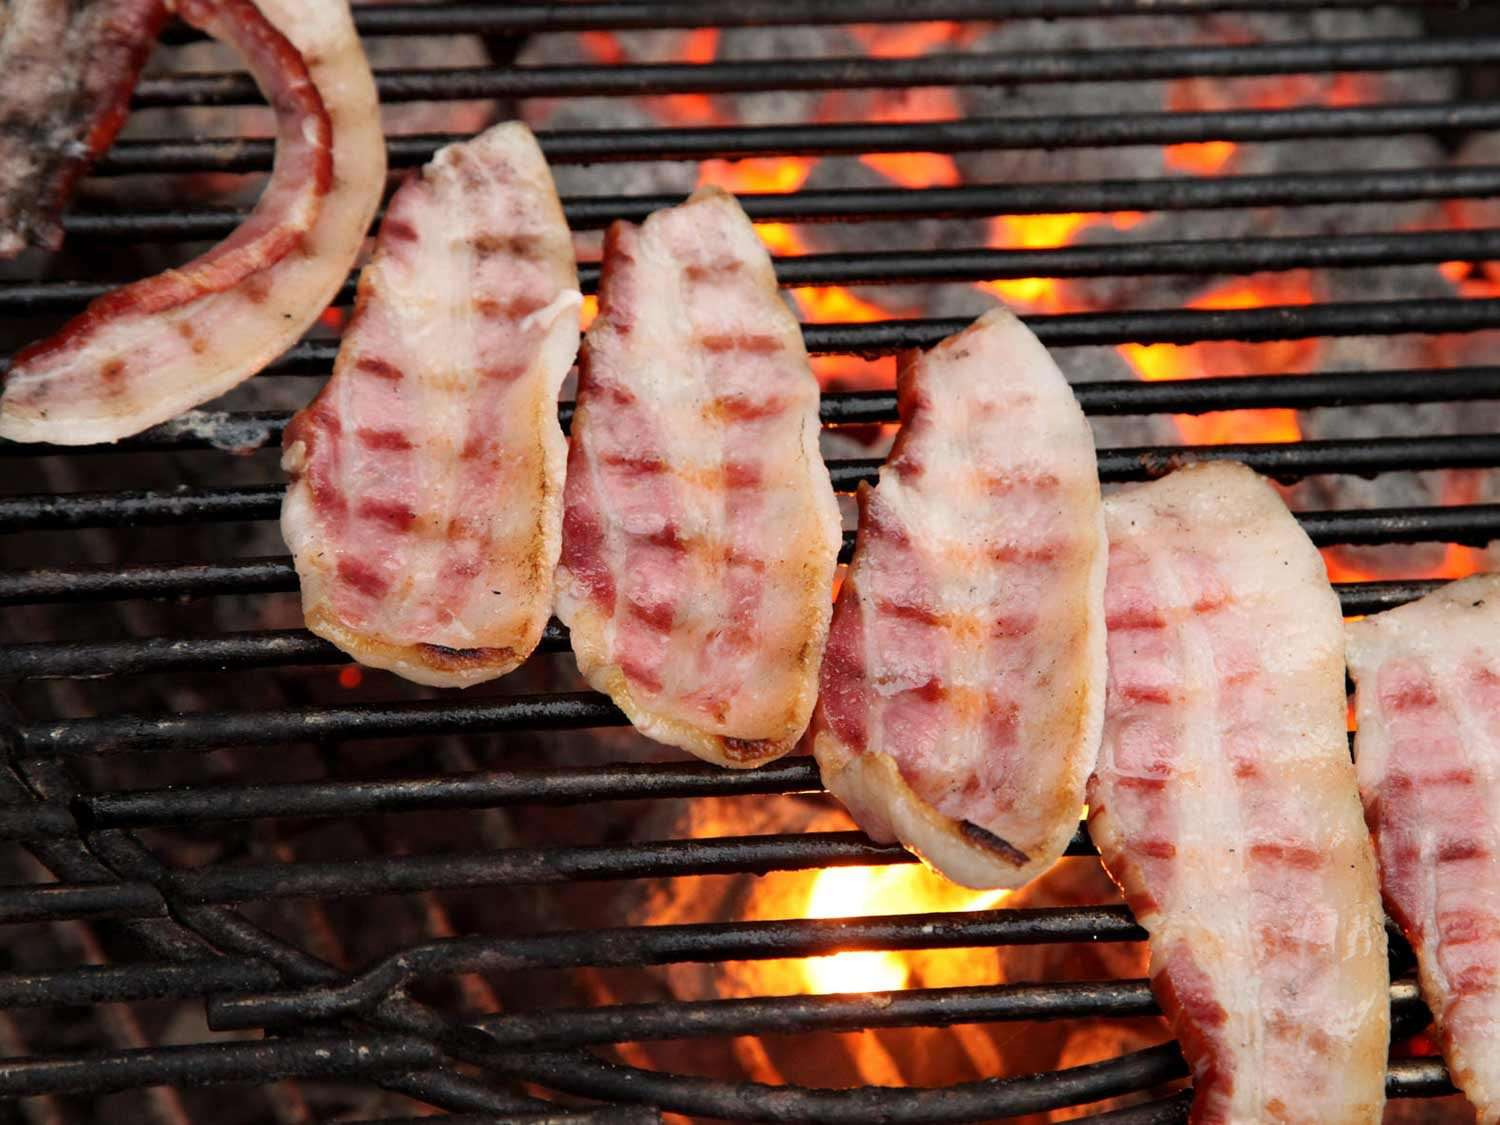 bacon on a charcoal grill over bright embers